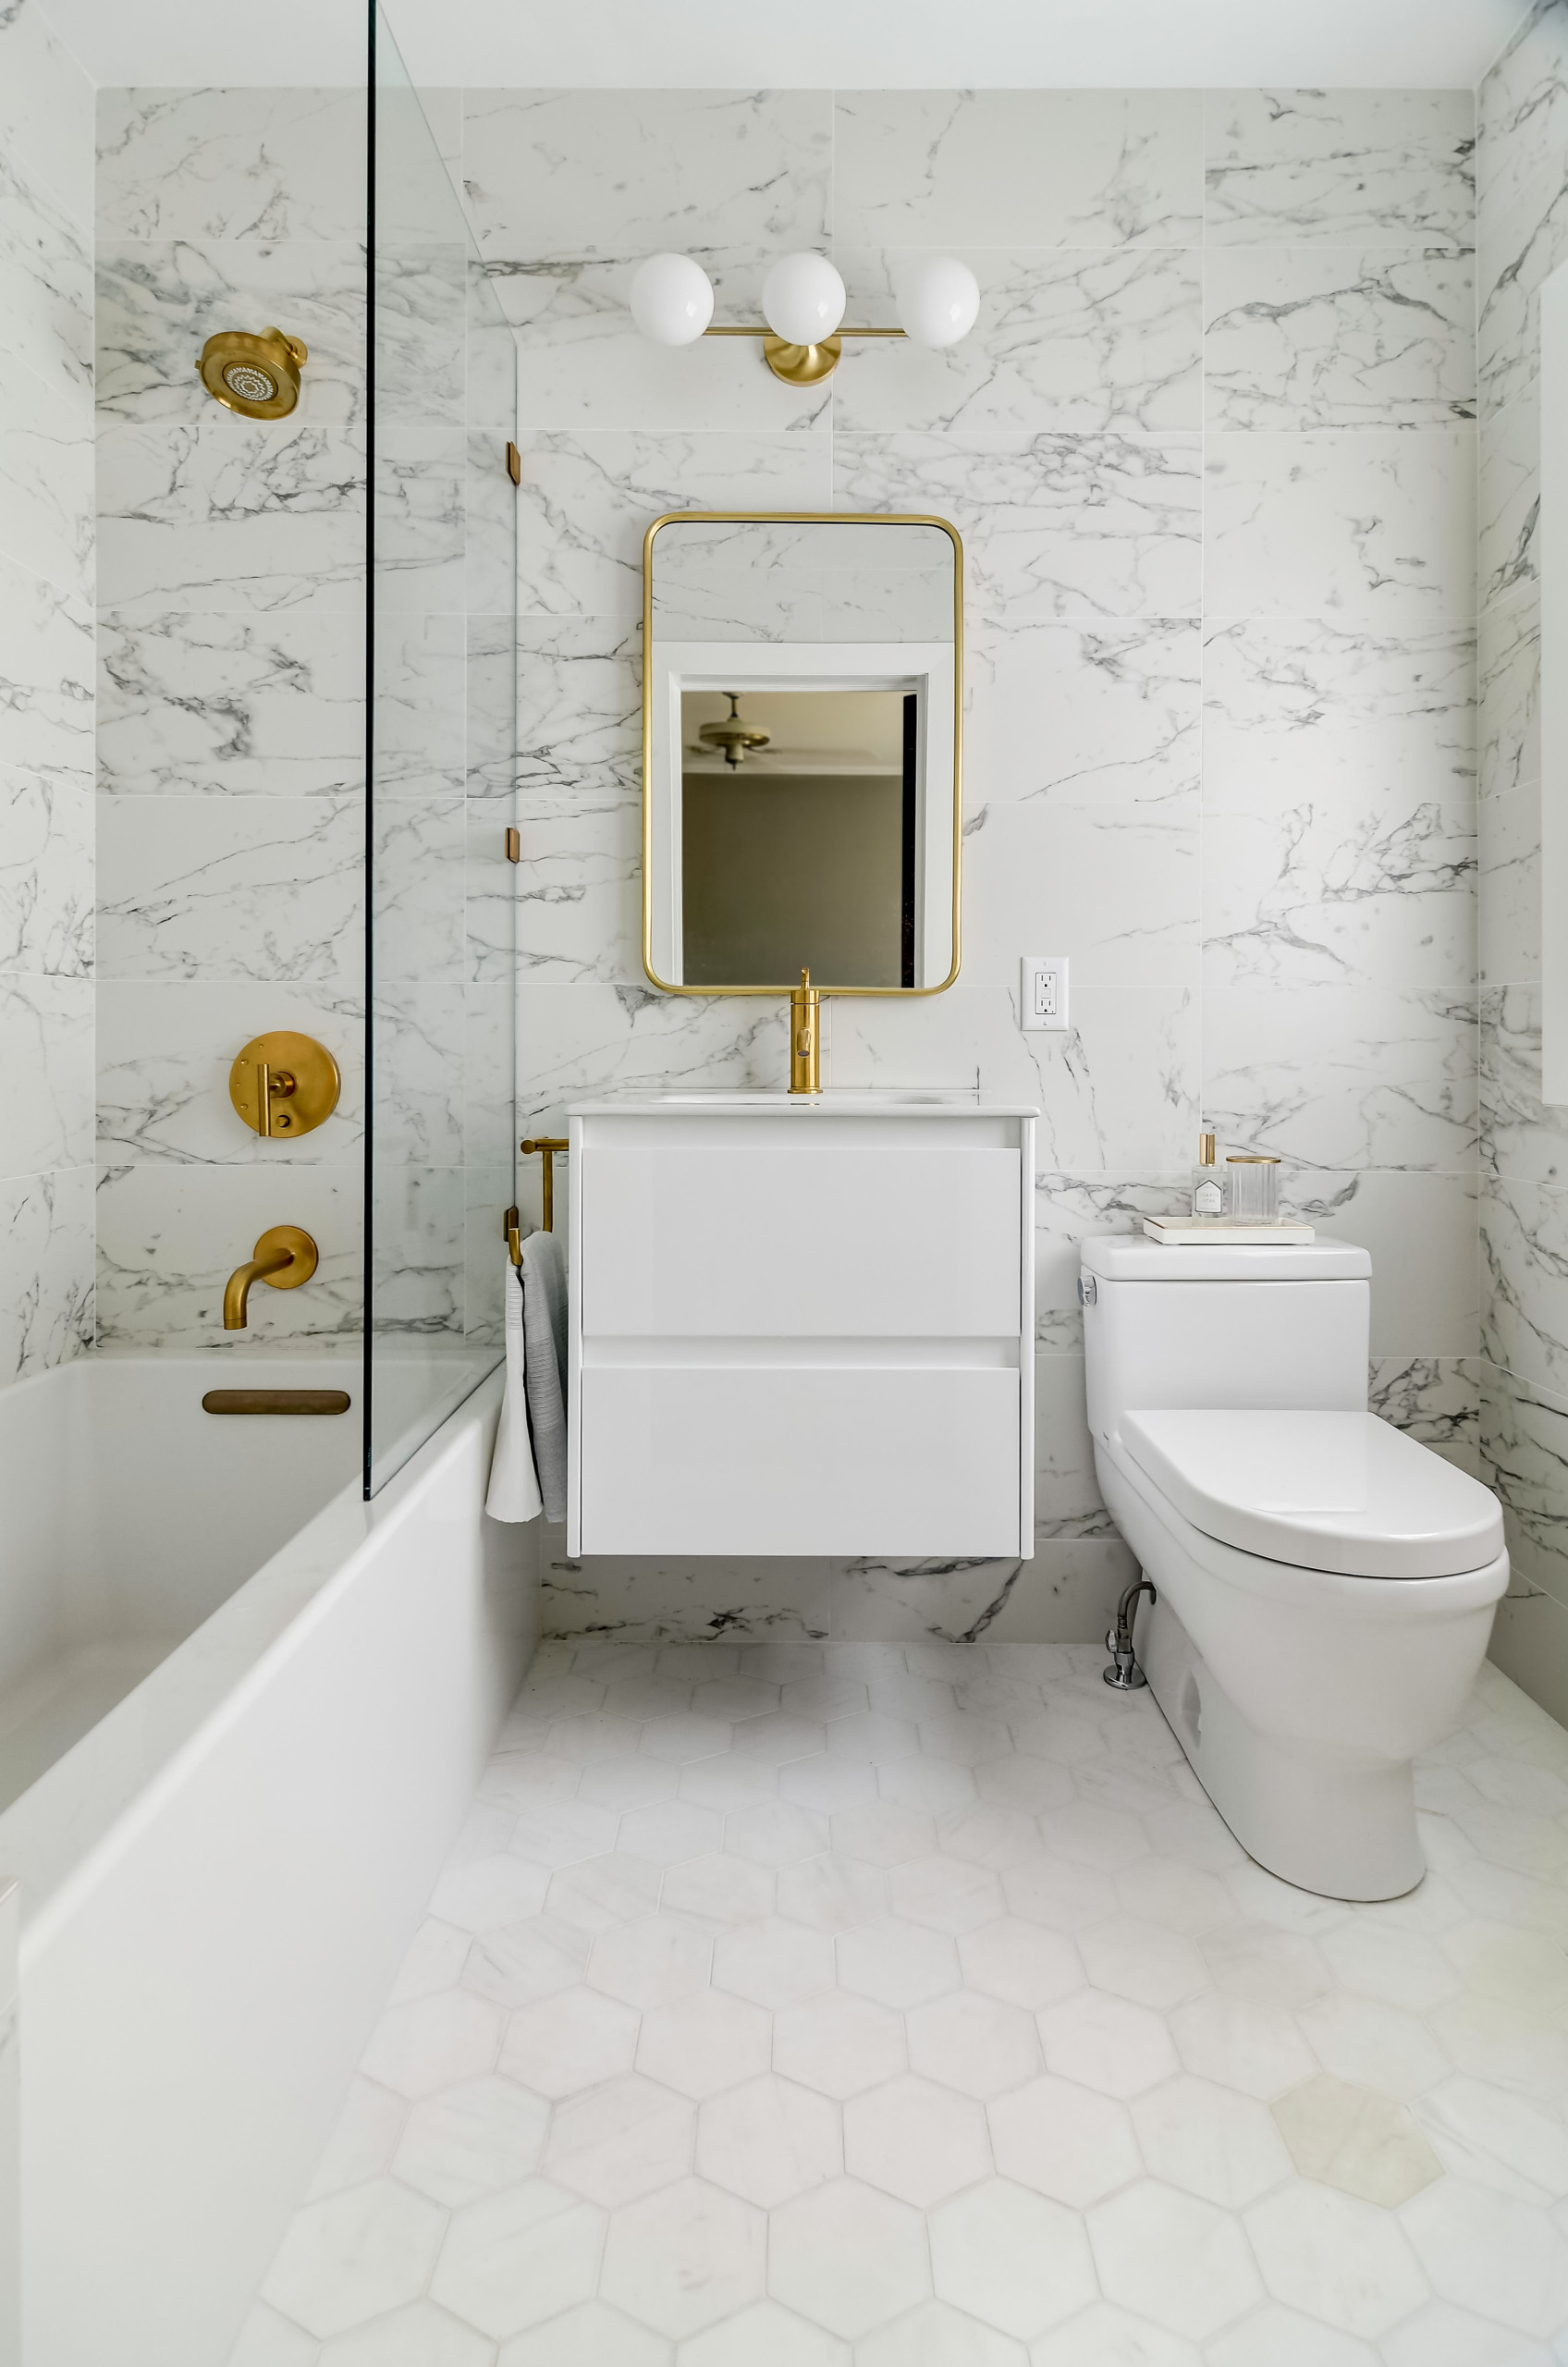 75 Beautiful Contemporary Bathroom Pictures Ideas February 2021 Houzz